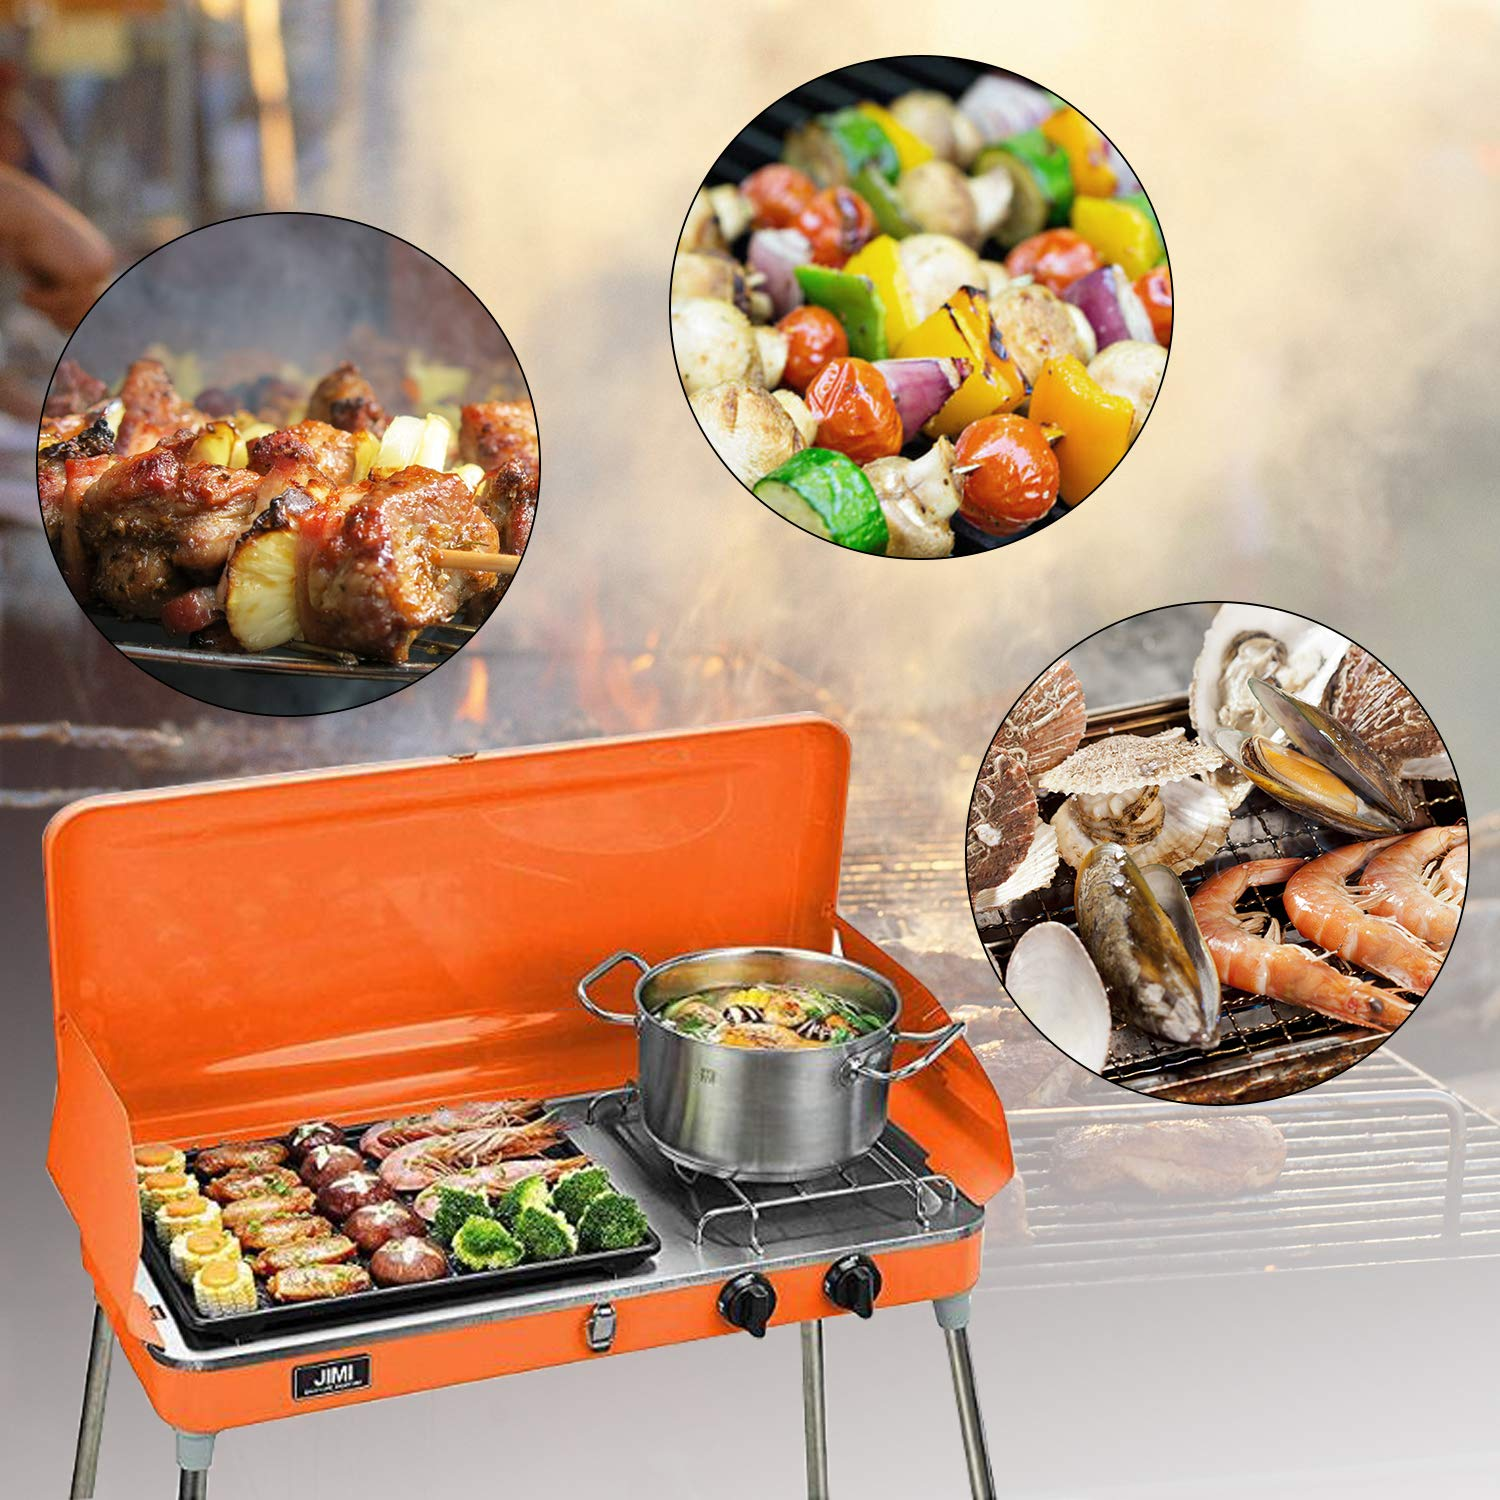 KOOLWOOM Portable Liquid Propane Grill,2 Burner Grill/Stove Barbecue Grill Outdoor Cooking Camping Stove Stainless Steel (Orange) by KOOLWOOM